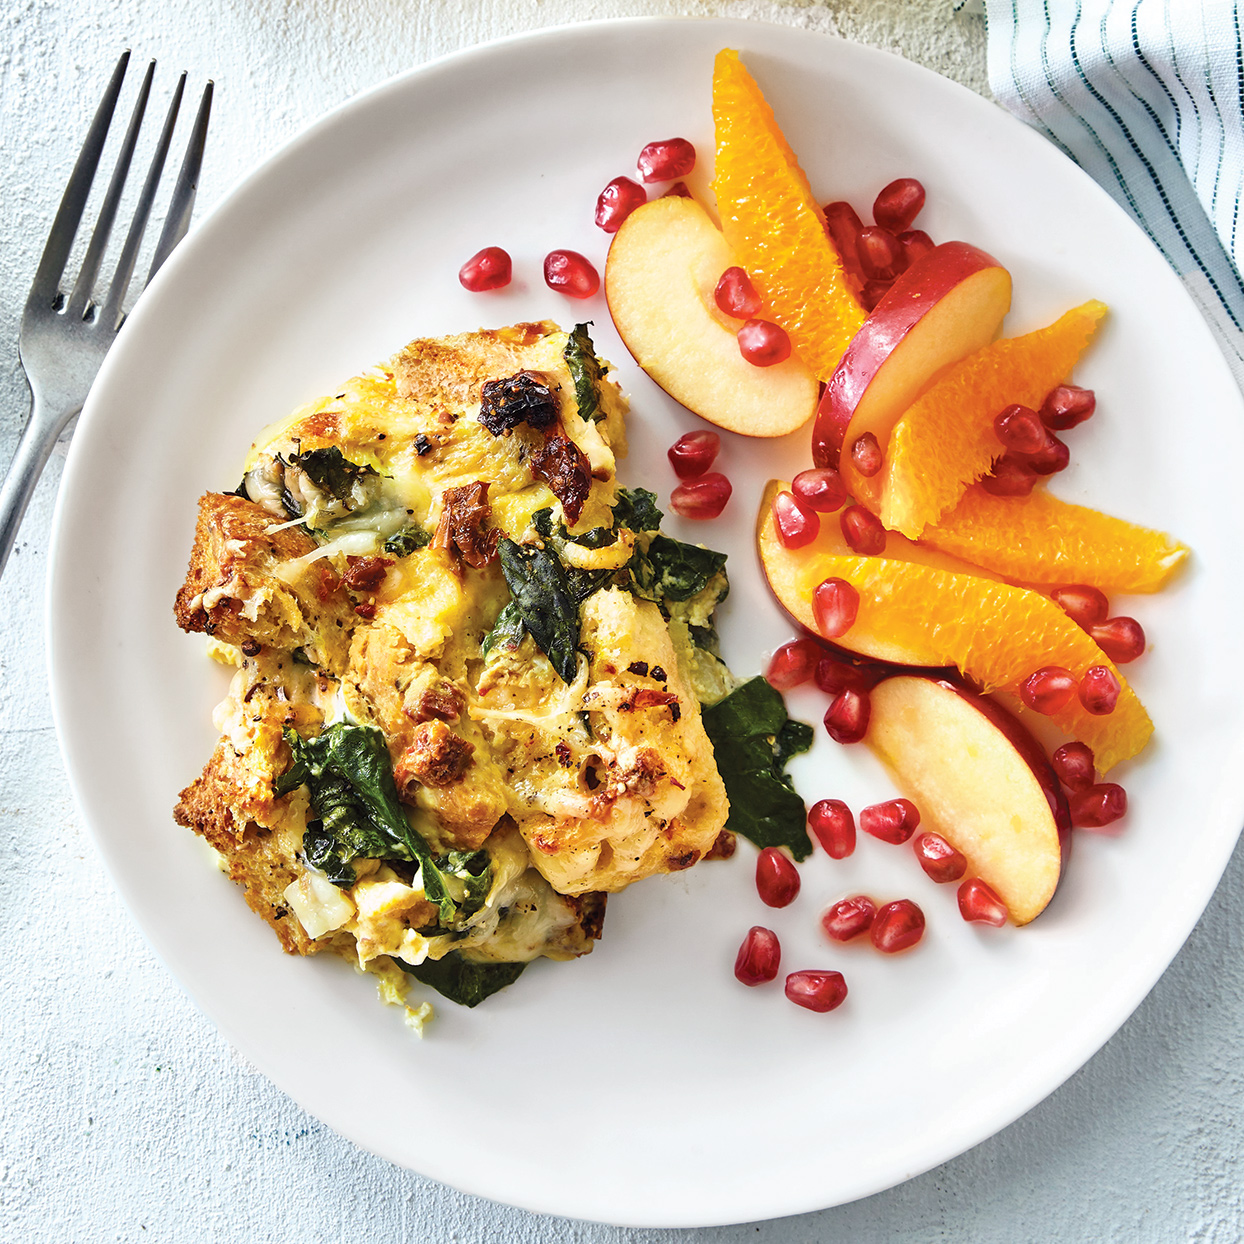 For a lazy-morning breakfast or when hosting a brunch, make this easy vegetarian recipe your game plan. Be sure to use crusty, freshly baked bread from the bakery section of your supermarket instead of a premade loaf from the bread aisle. Serve with seasonal fruit and juice to balance the richness of the egg and cheese.